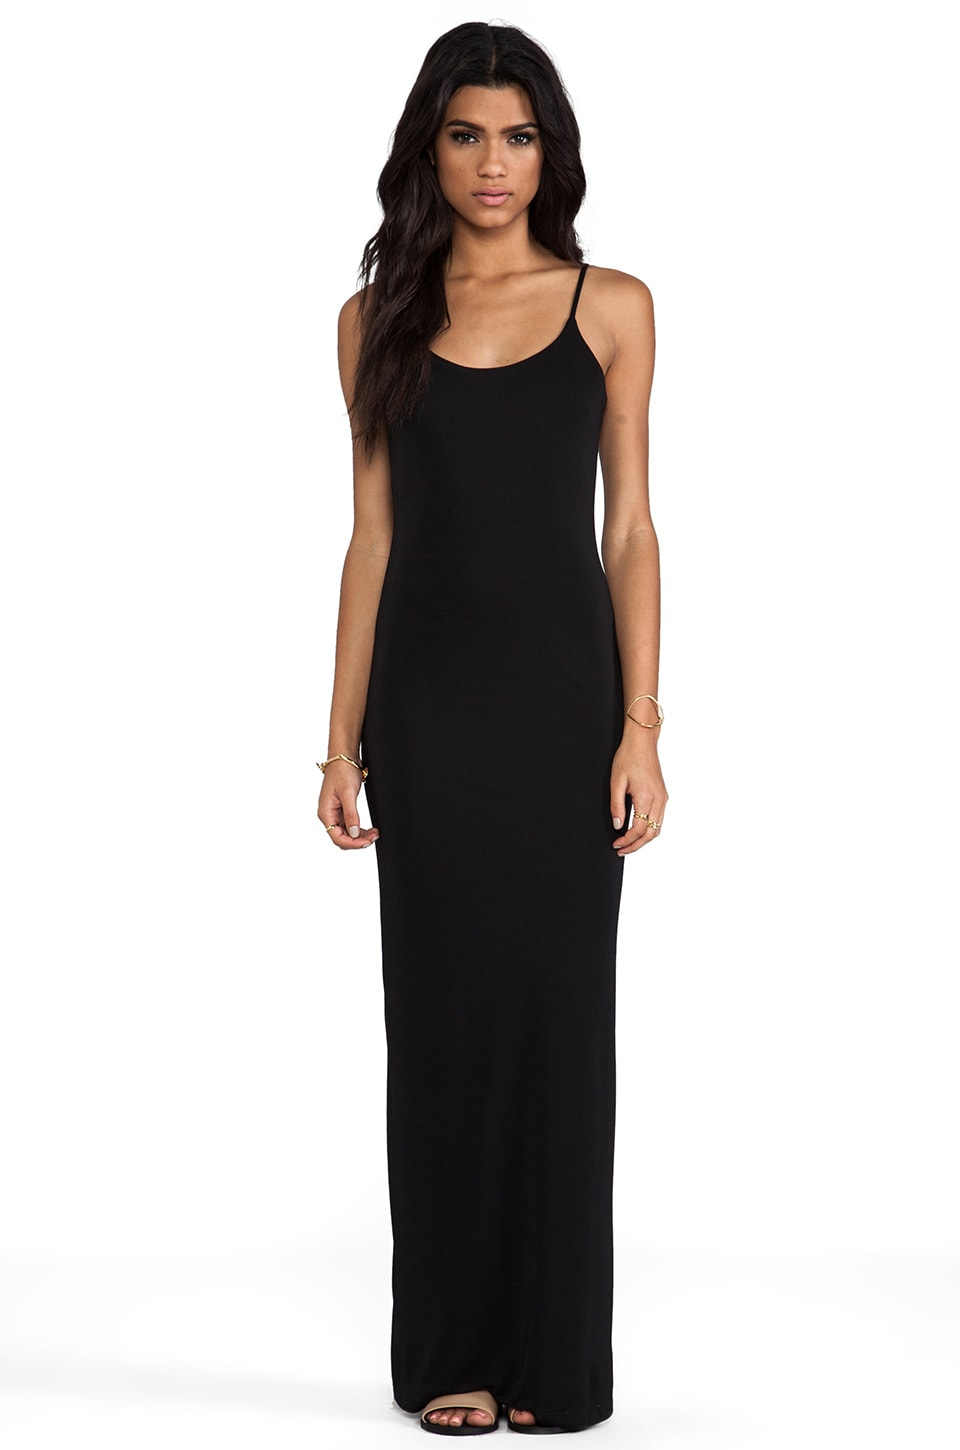 Bobi BLACK LABEL Maxi Tank Dress in Black